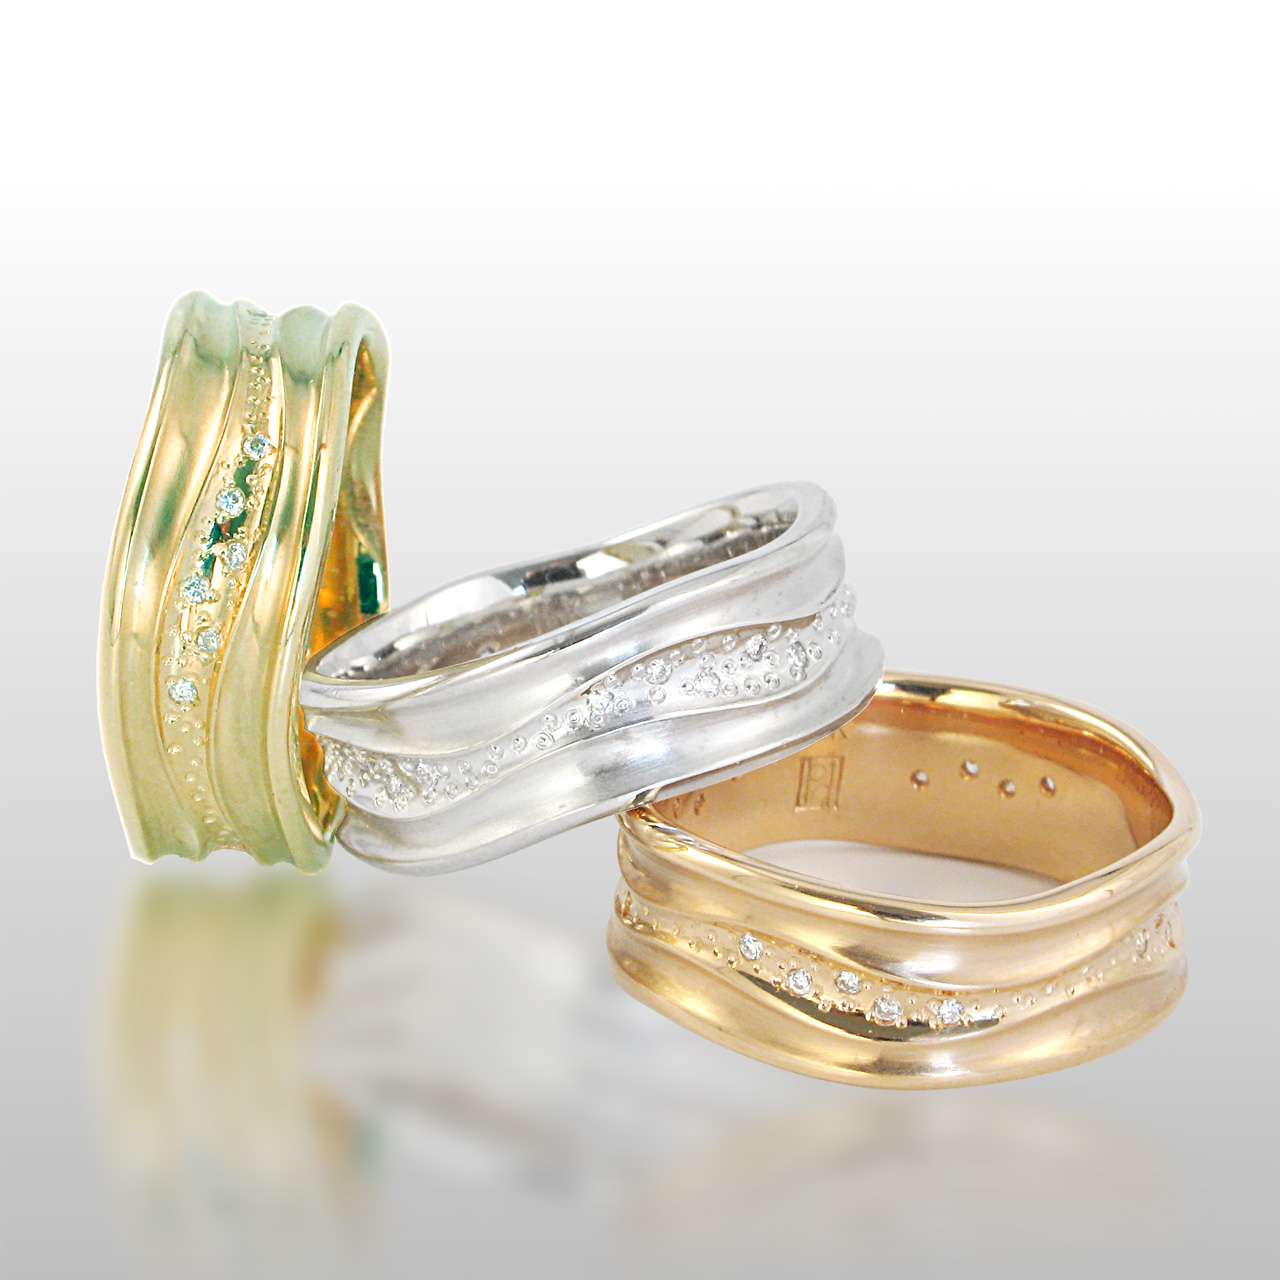 three wide band rings - one in yellow, white and rose gold. Curvy lines and diamonds set in the center